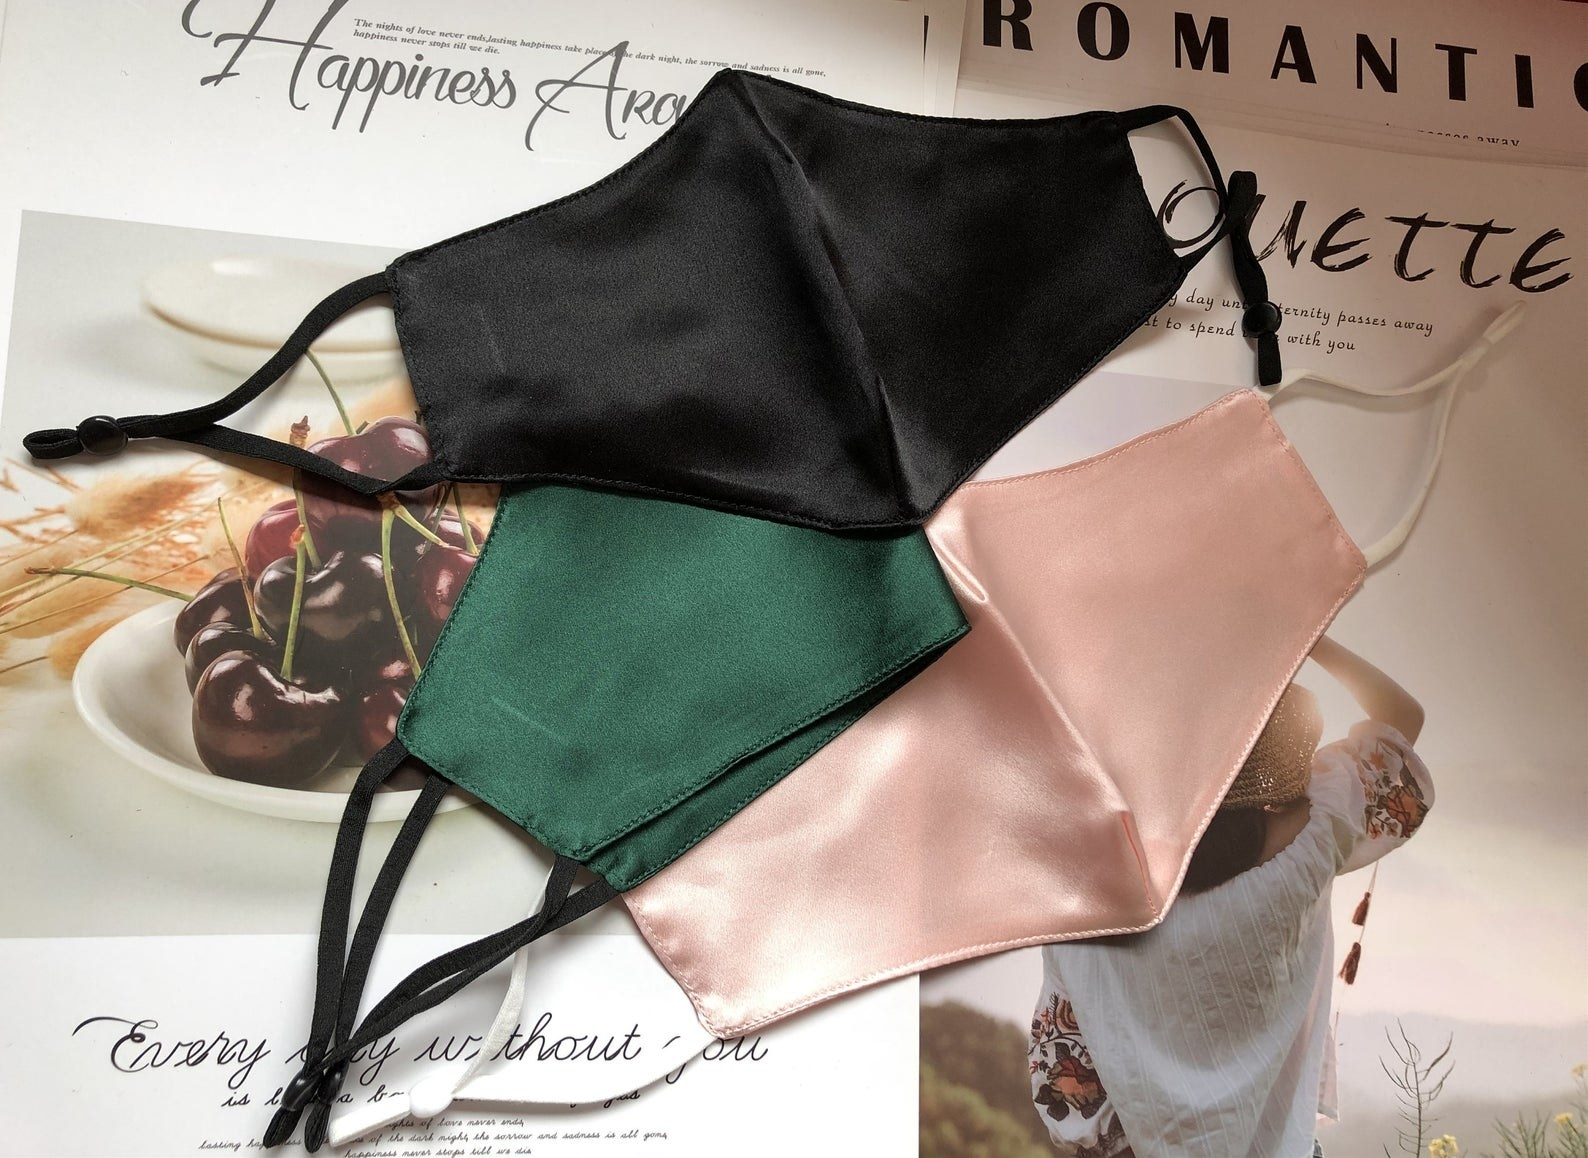 three silk masks in black, emerald green, and pink